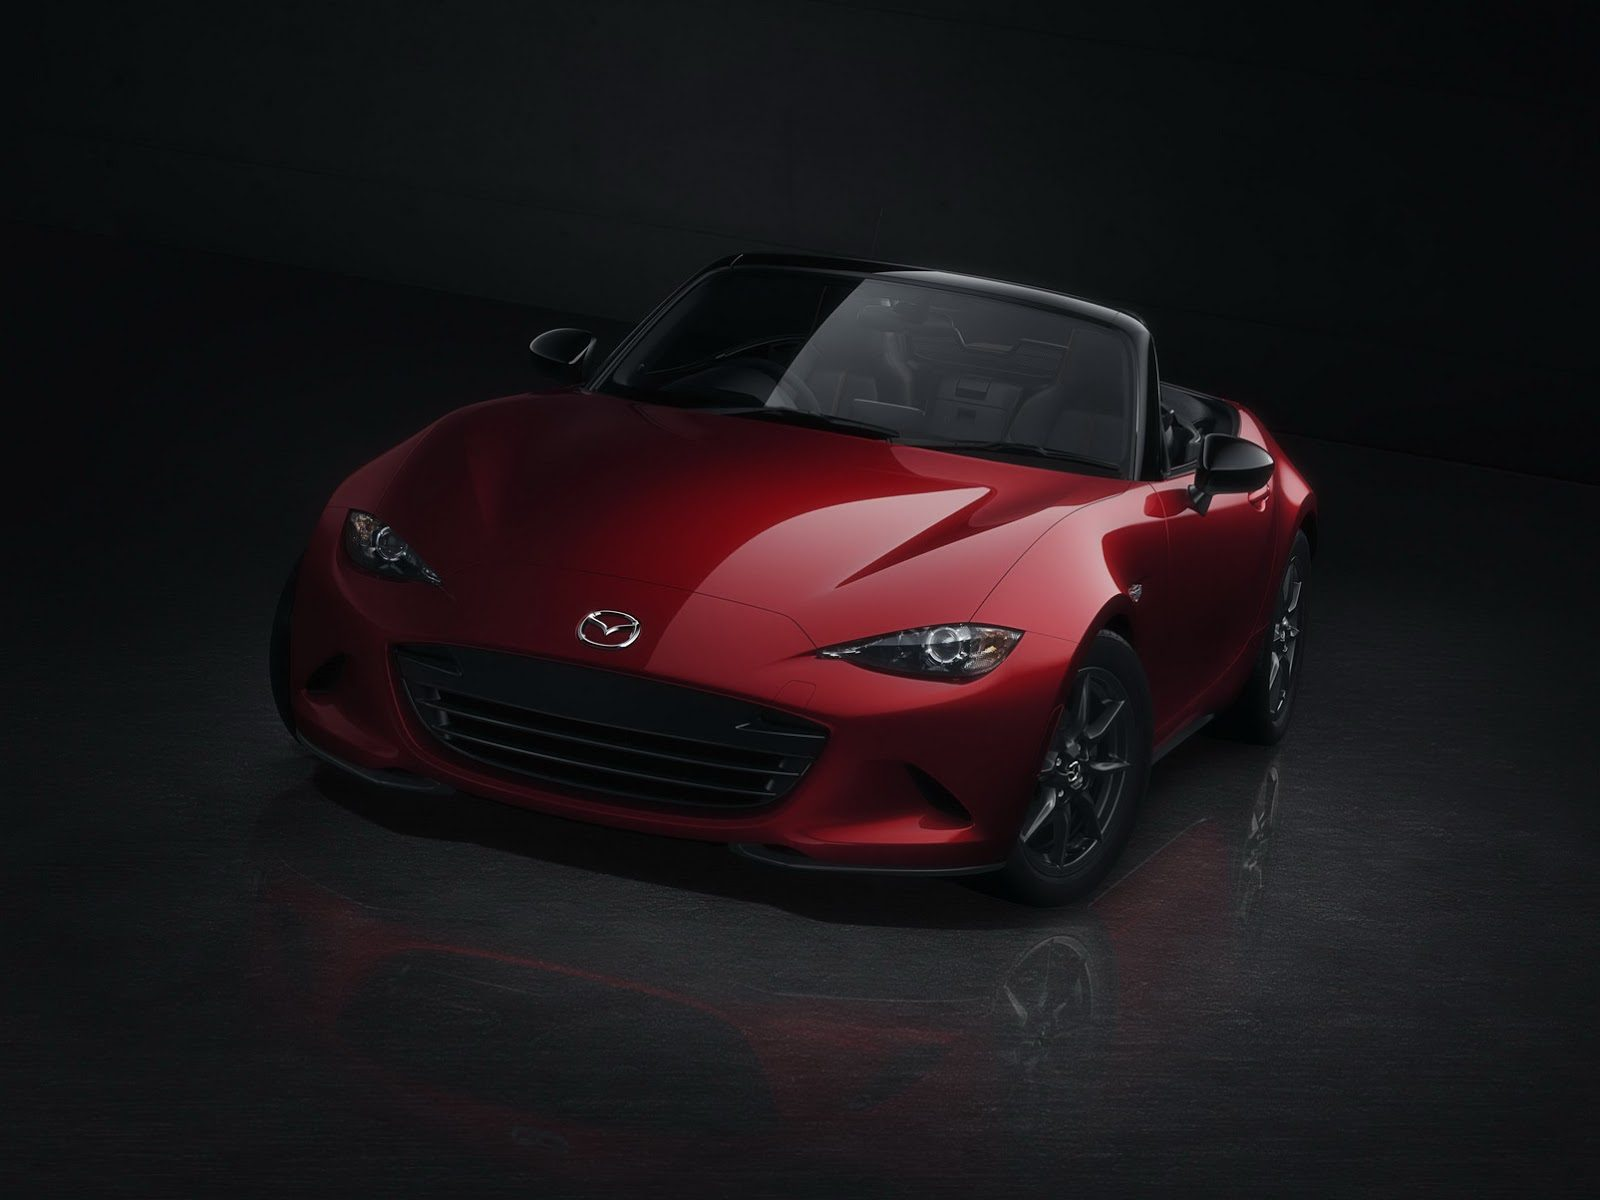 foto mazda mx 5 nd mazda mx 5 2015 nd 002. Black Bedroom Furniture Sets. Home Design Ideas